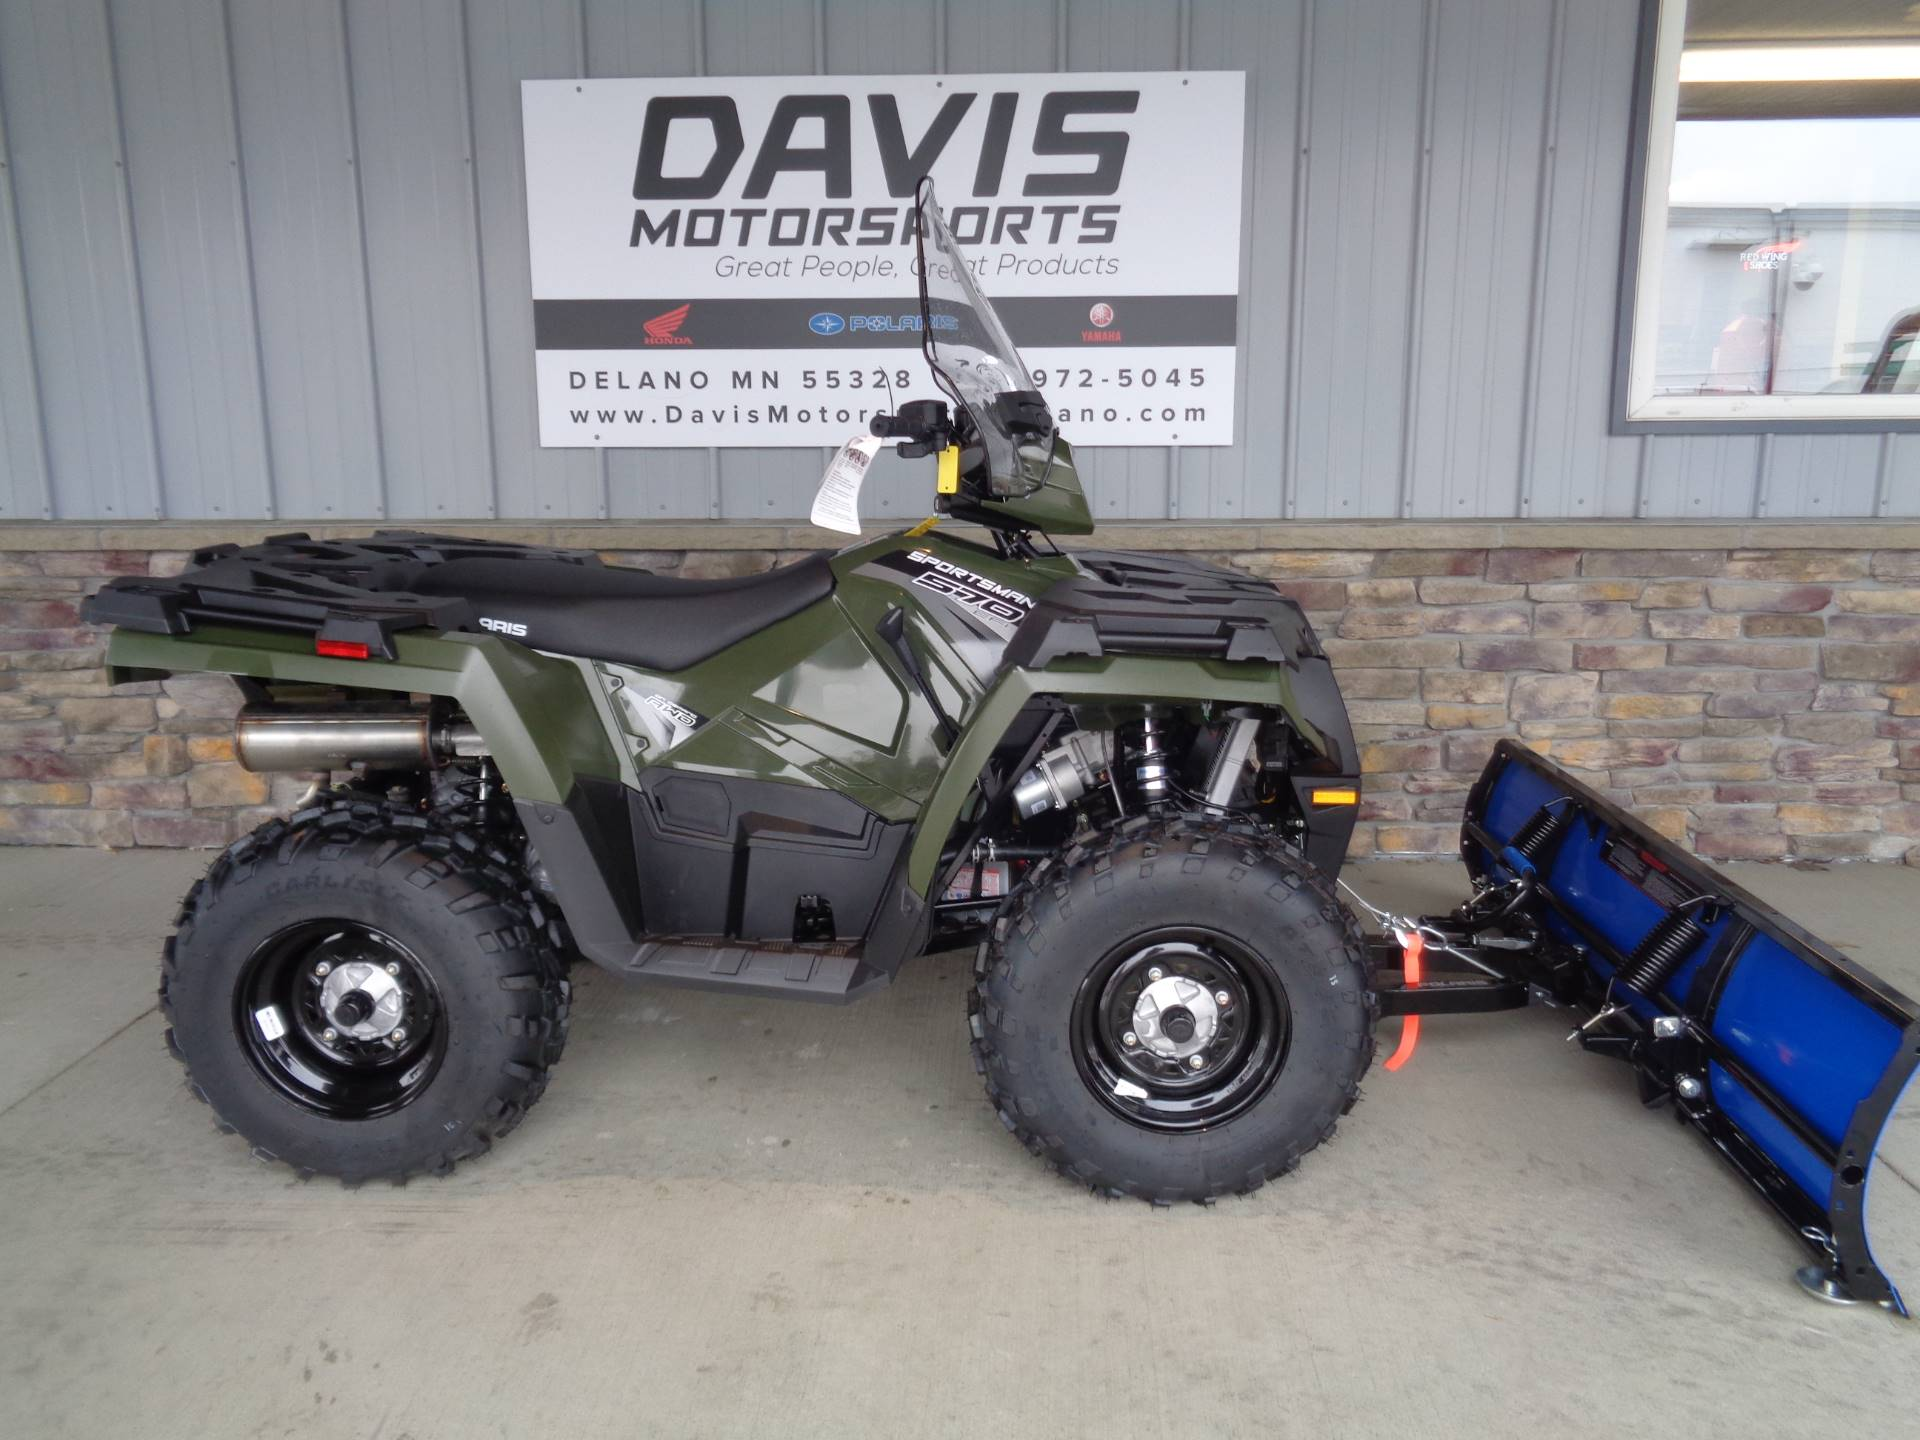 2019 Polaris Sportsman 570 EPS in Delano, Minnesota - Photo 1